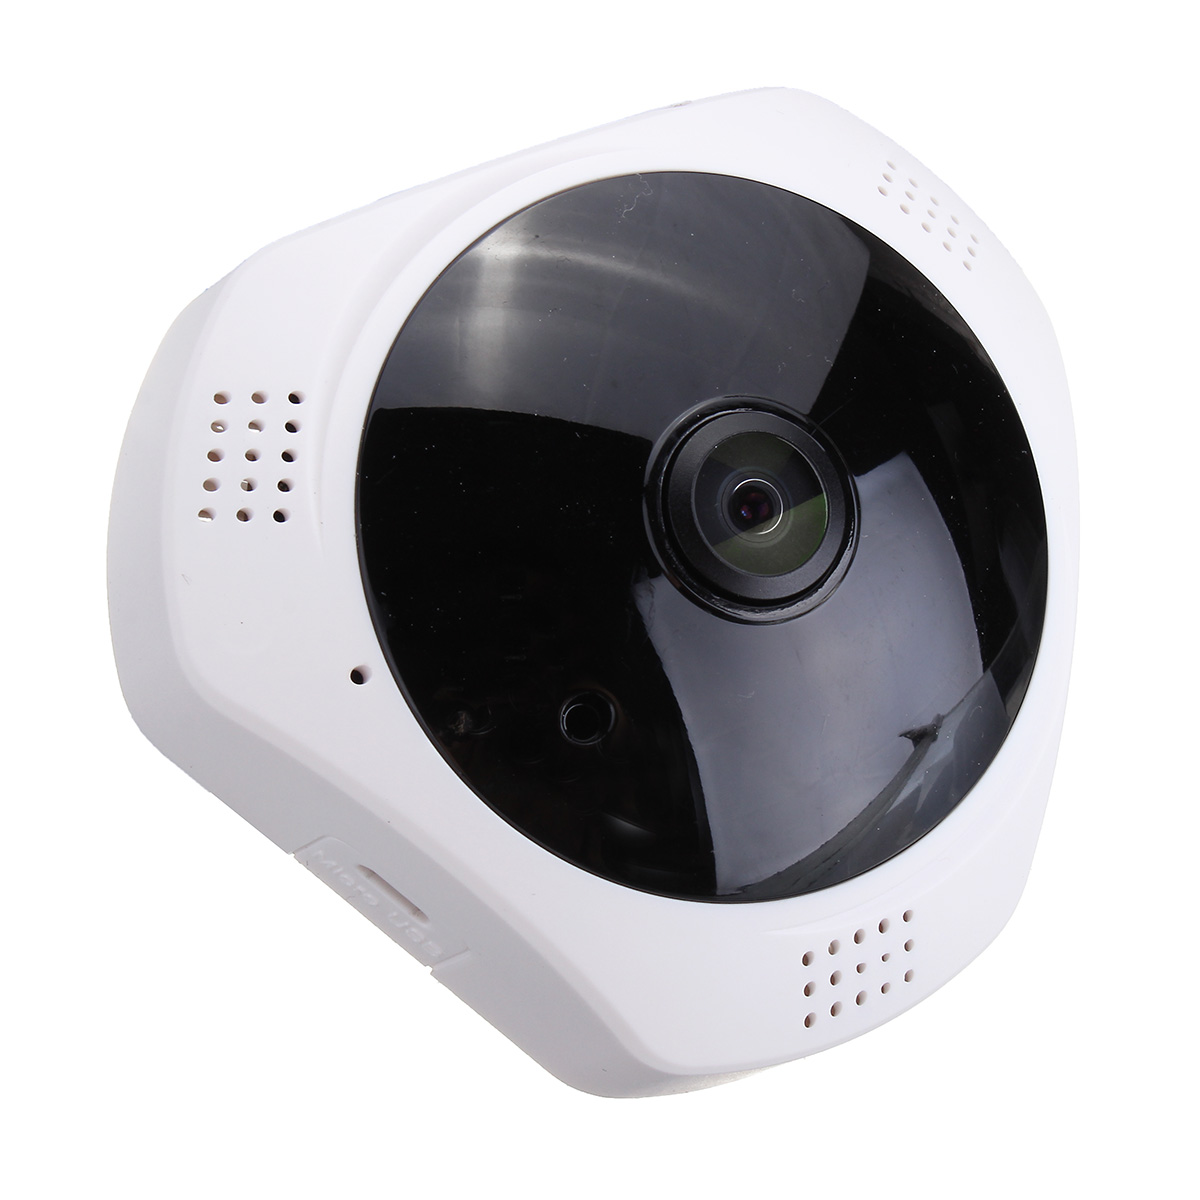 Safurance 360 degree Panoramic Fisheye IP Camera Wifi Security Surveillance Camera VR 3D Cam CCTV Camera<br>